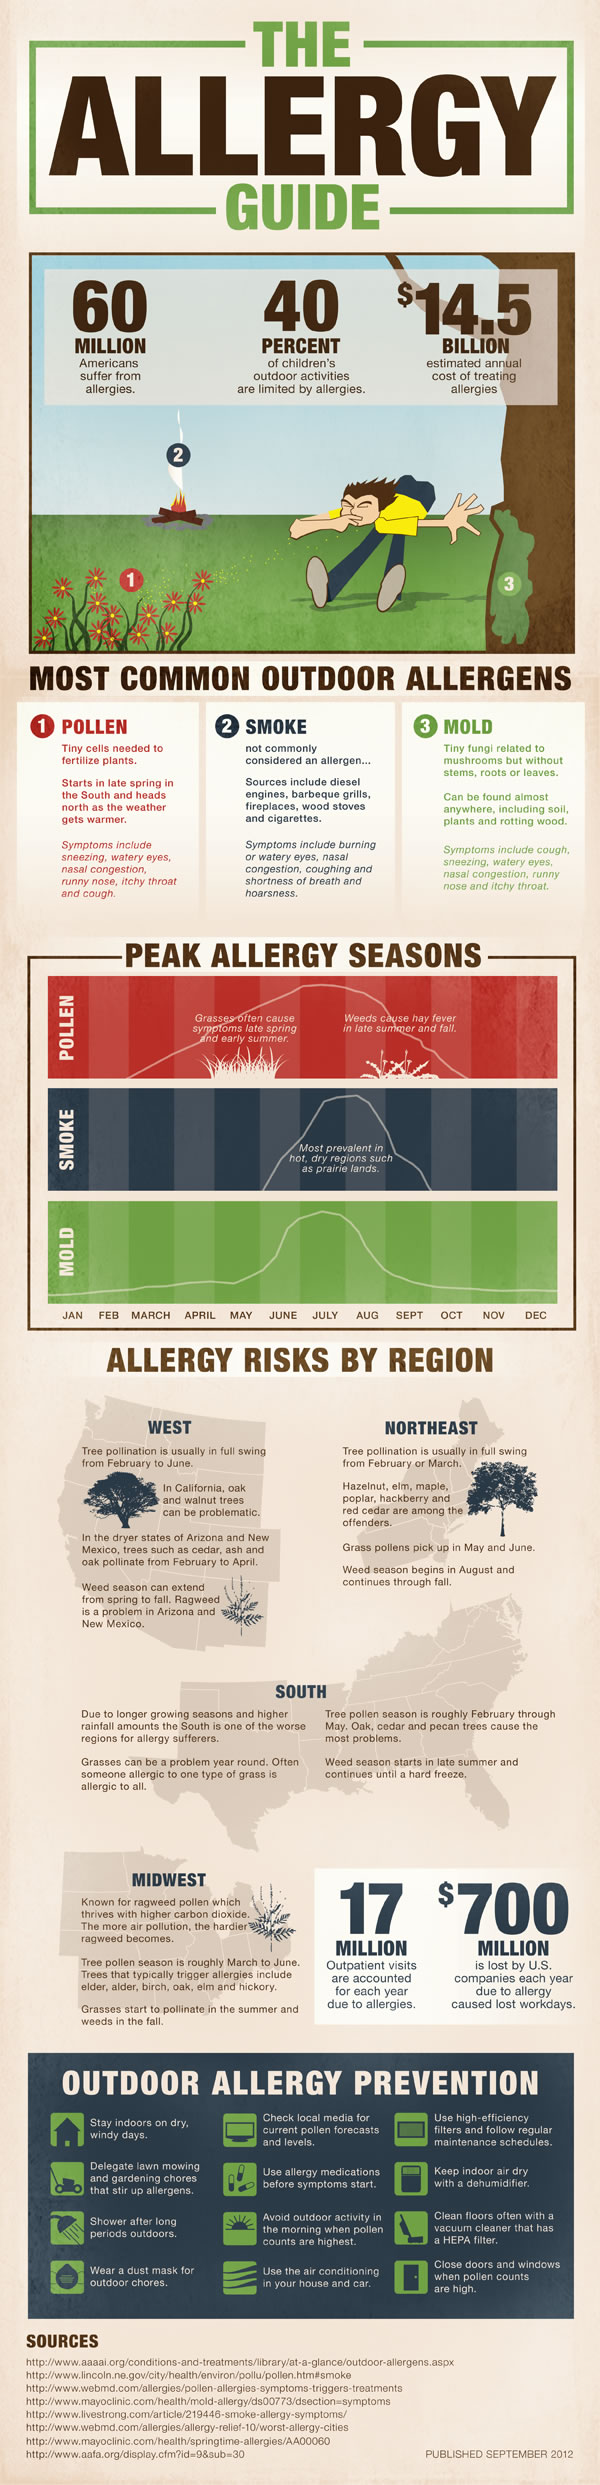 Air Pollution and Allergies in the USA [Infographic] | ecogreenlove